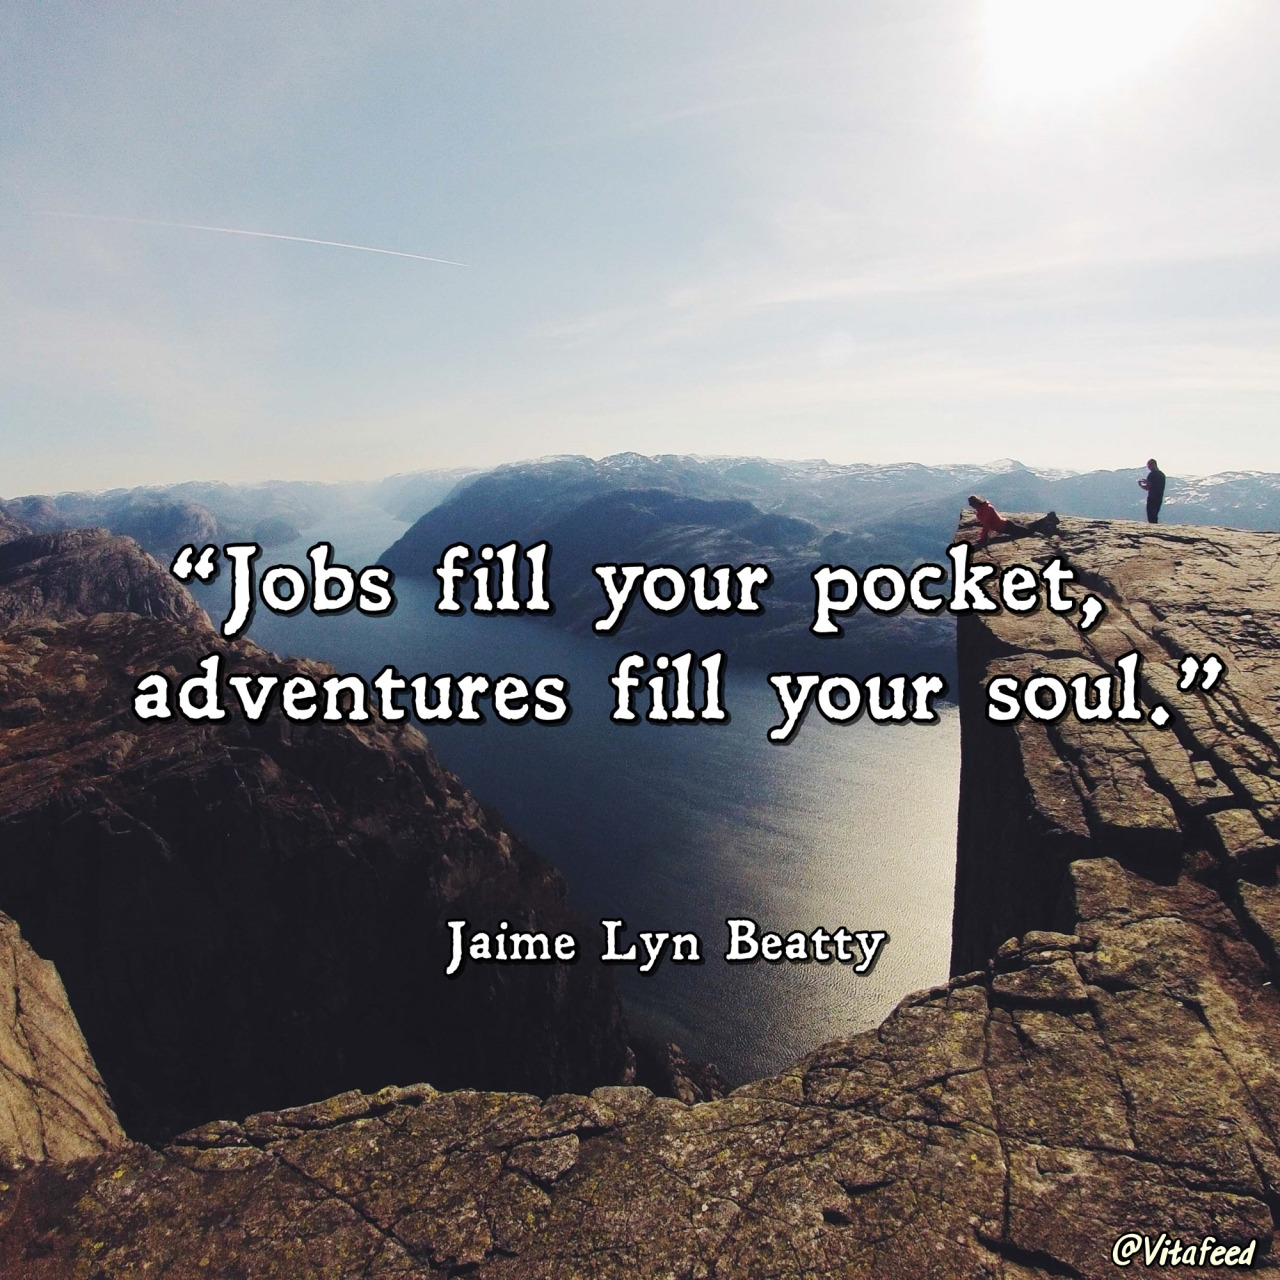 Pocket quote image